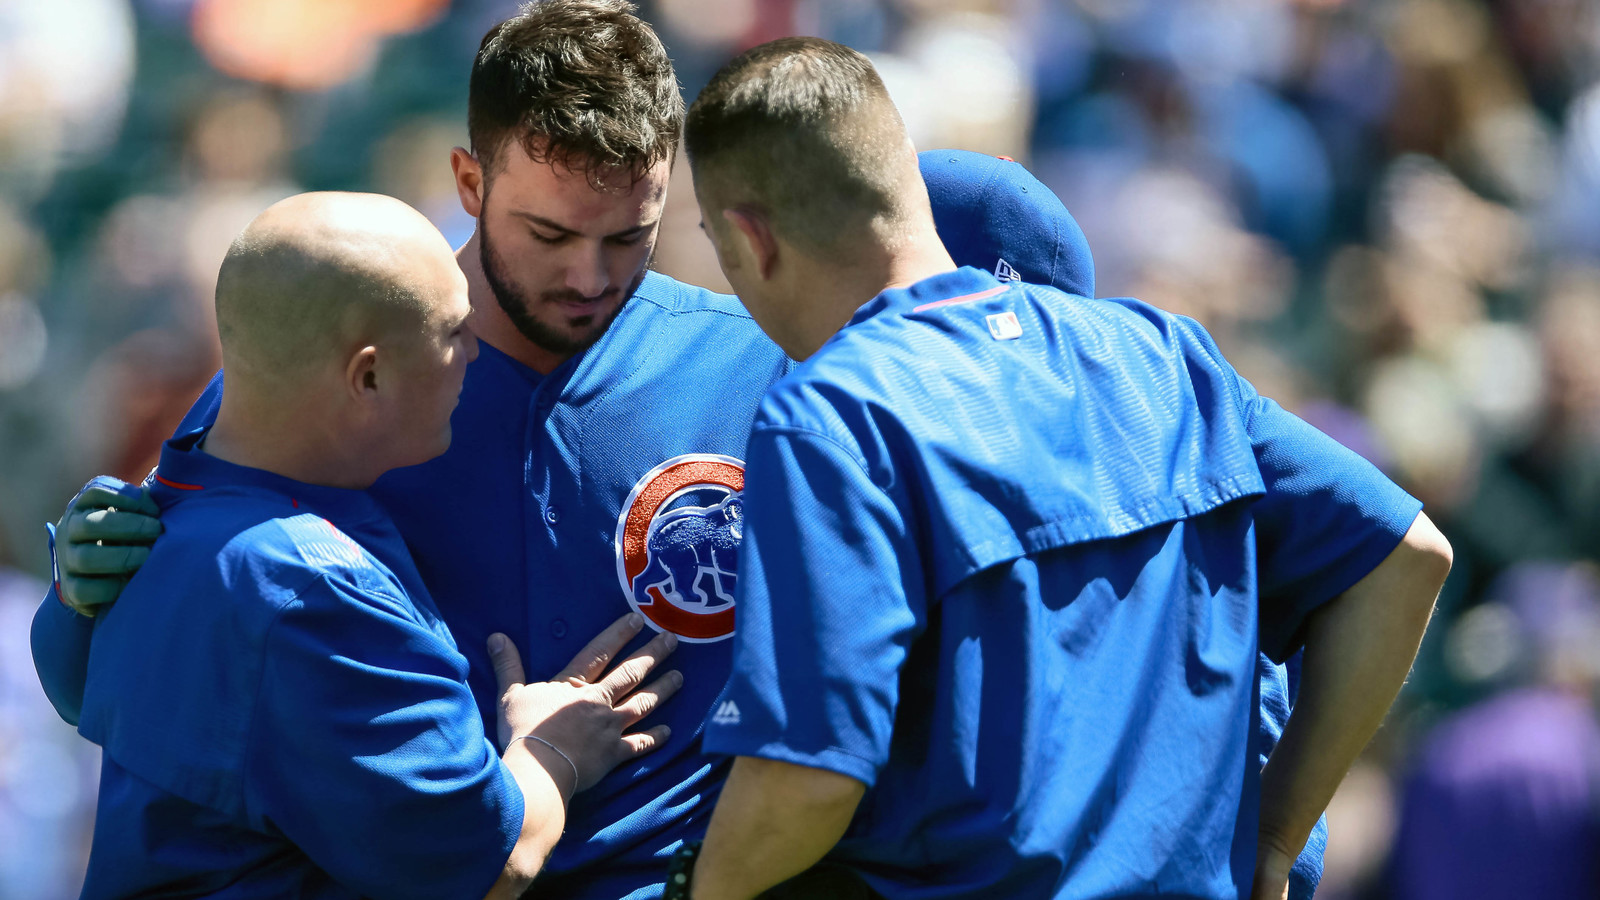 Cubs' Bryant hit in the head